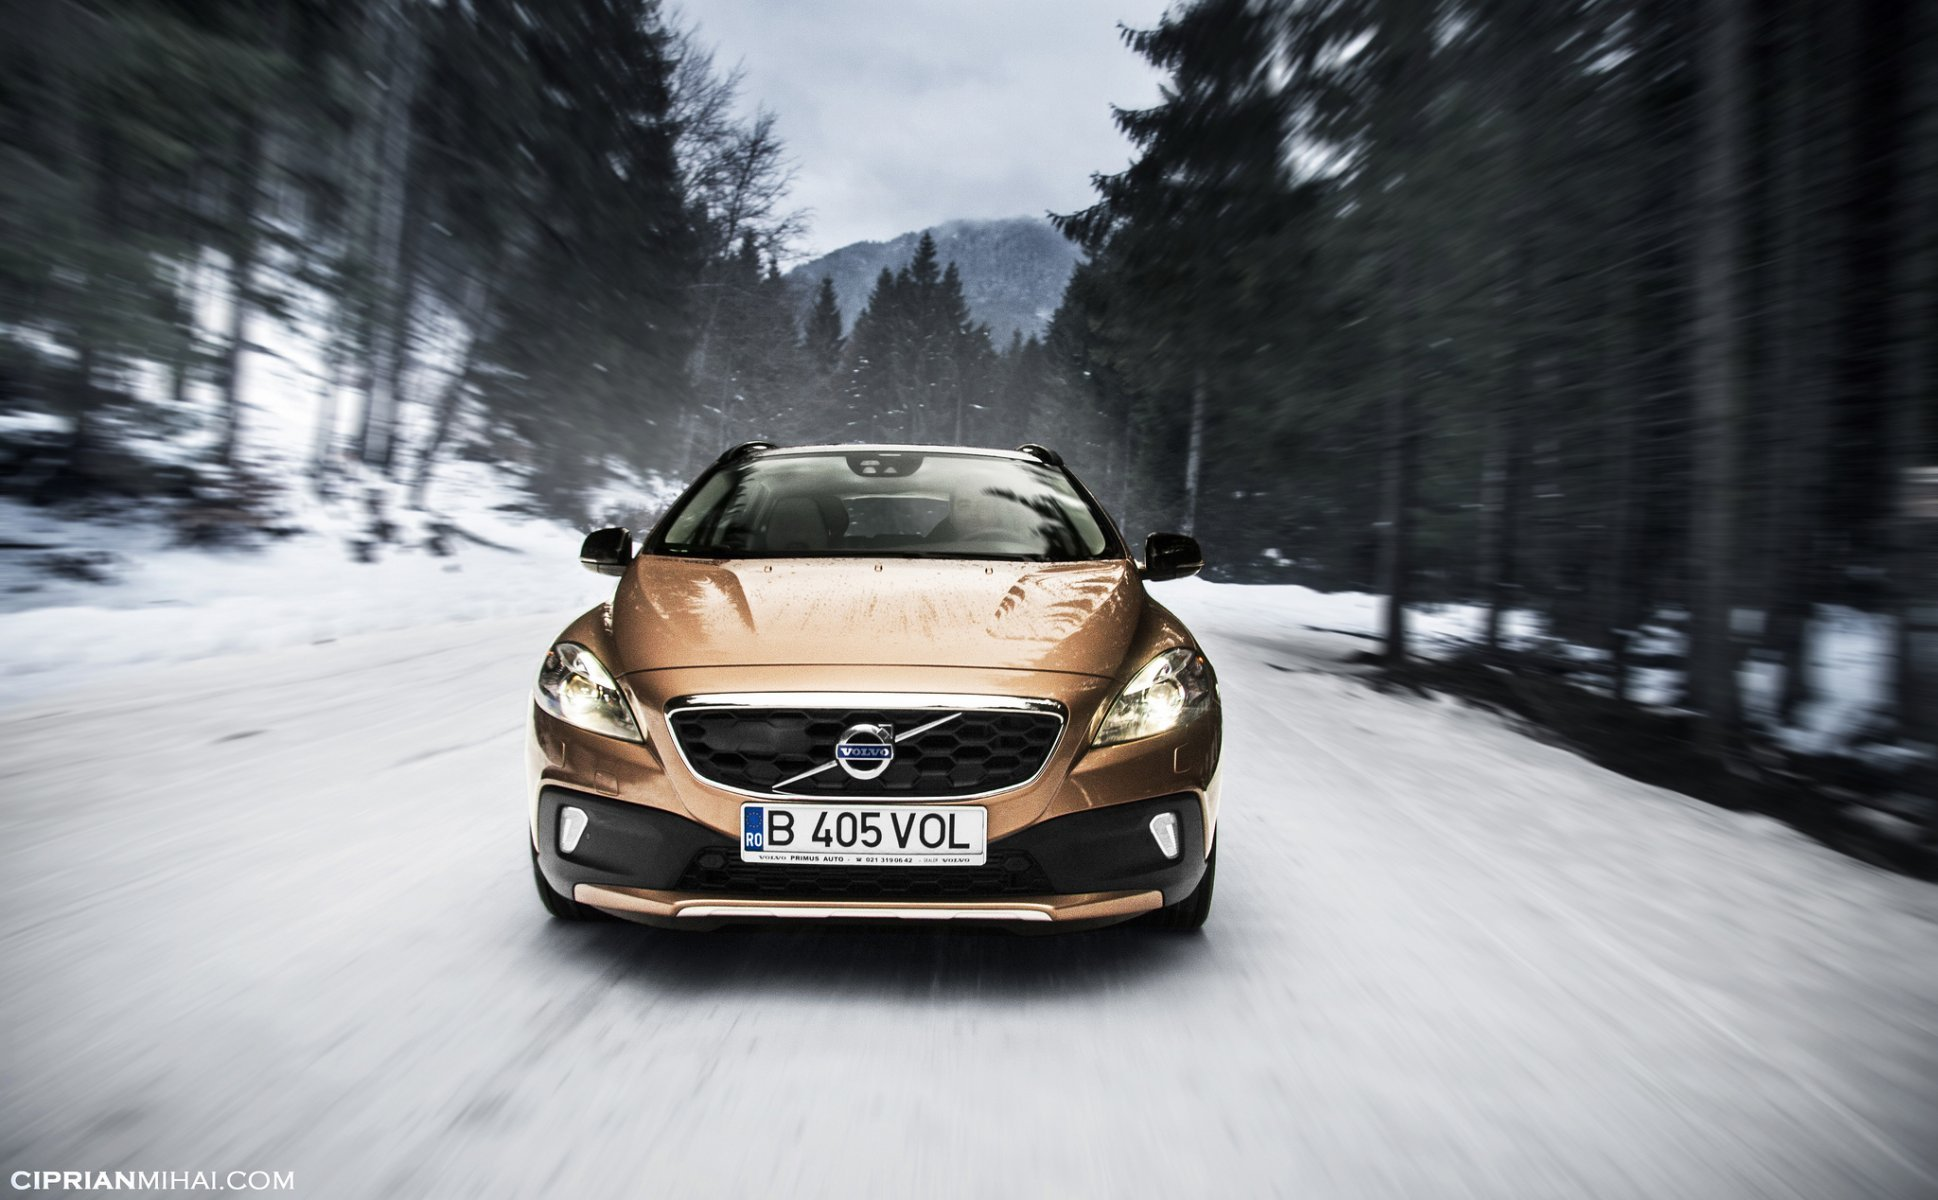 volvo volvo v40 cross country road speed forest winter HD wallpaper 1938x1200